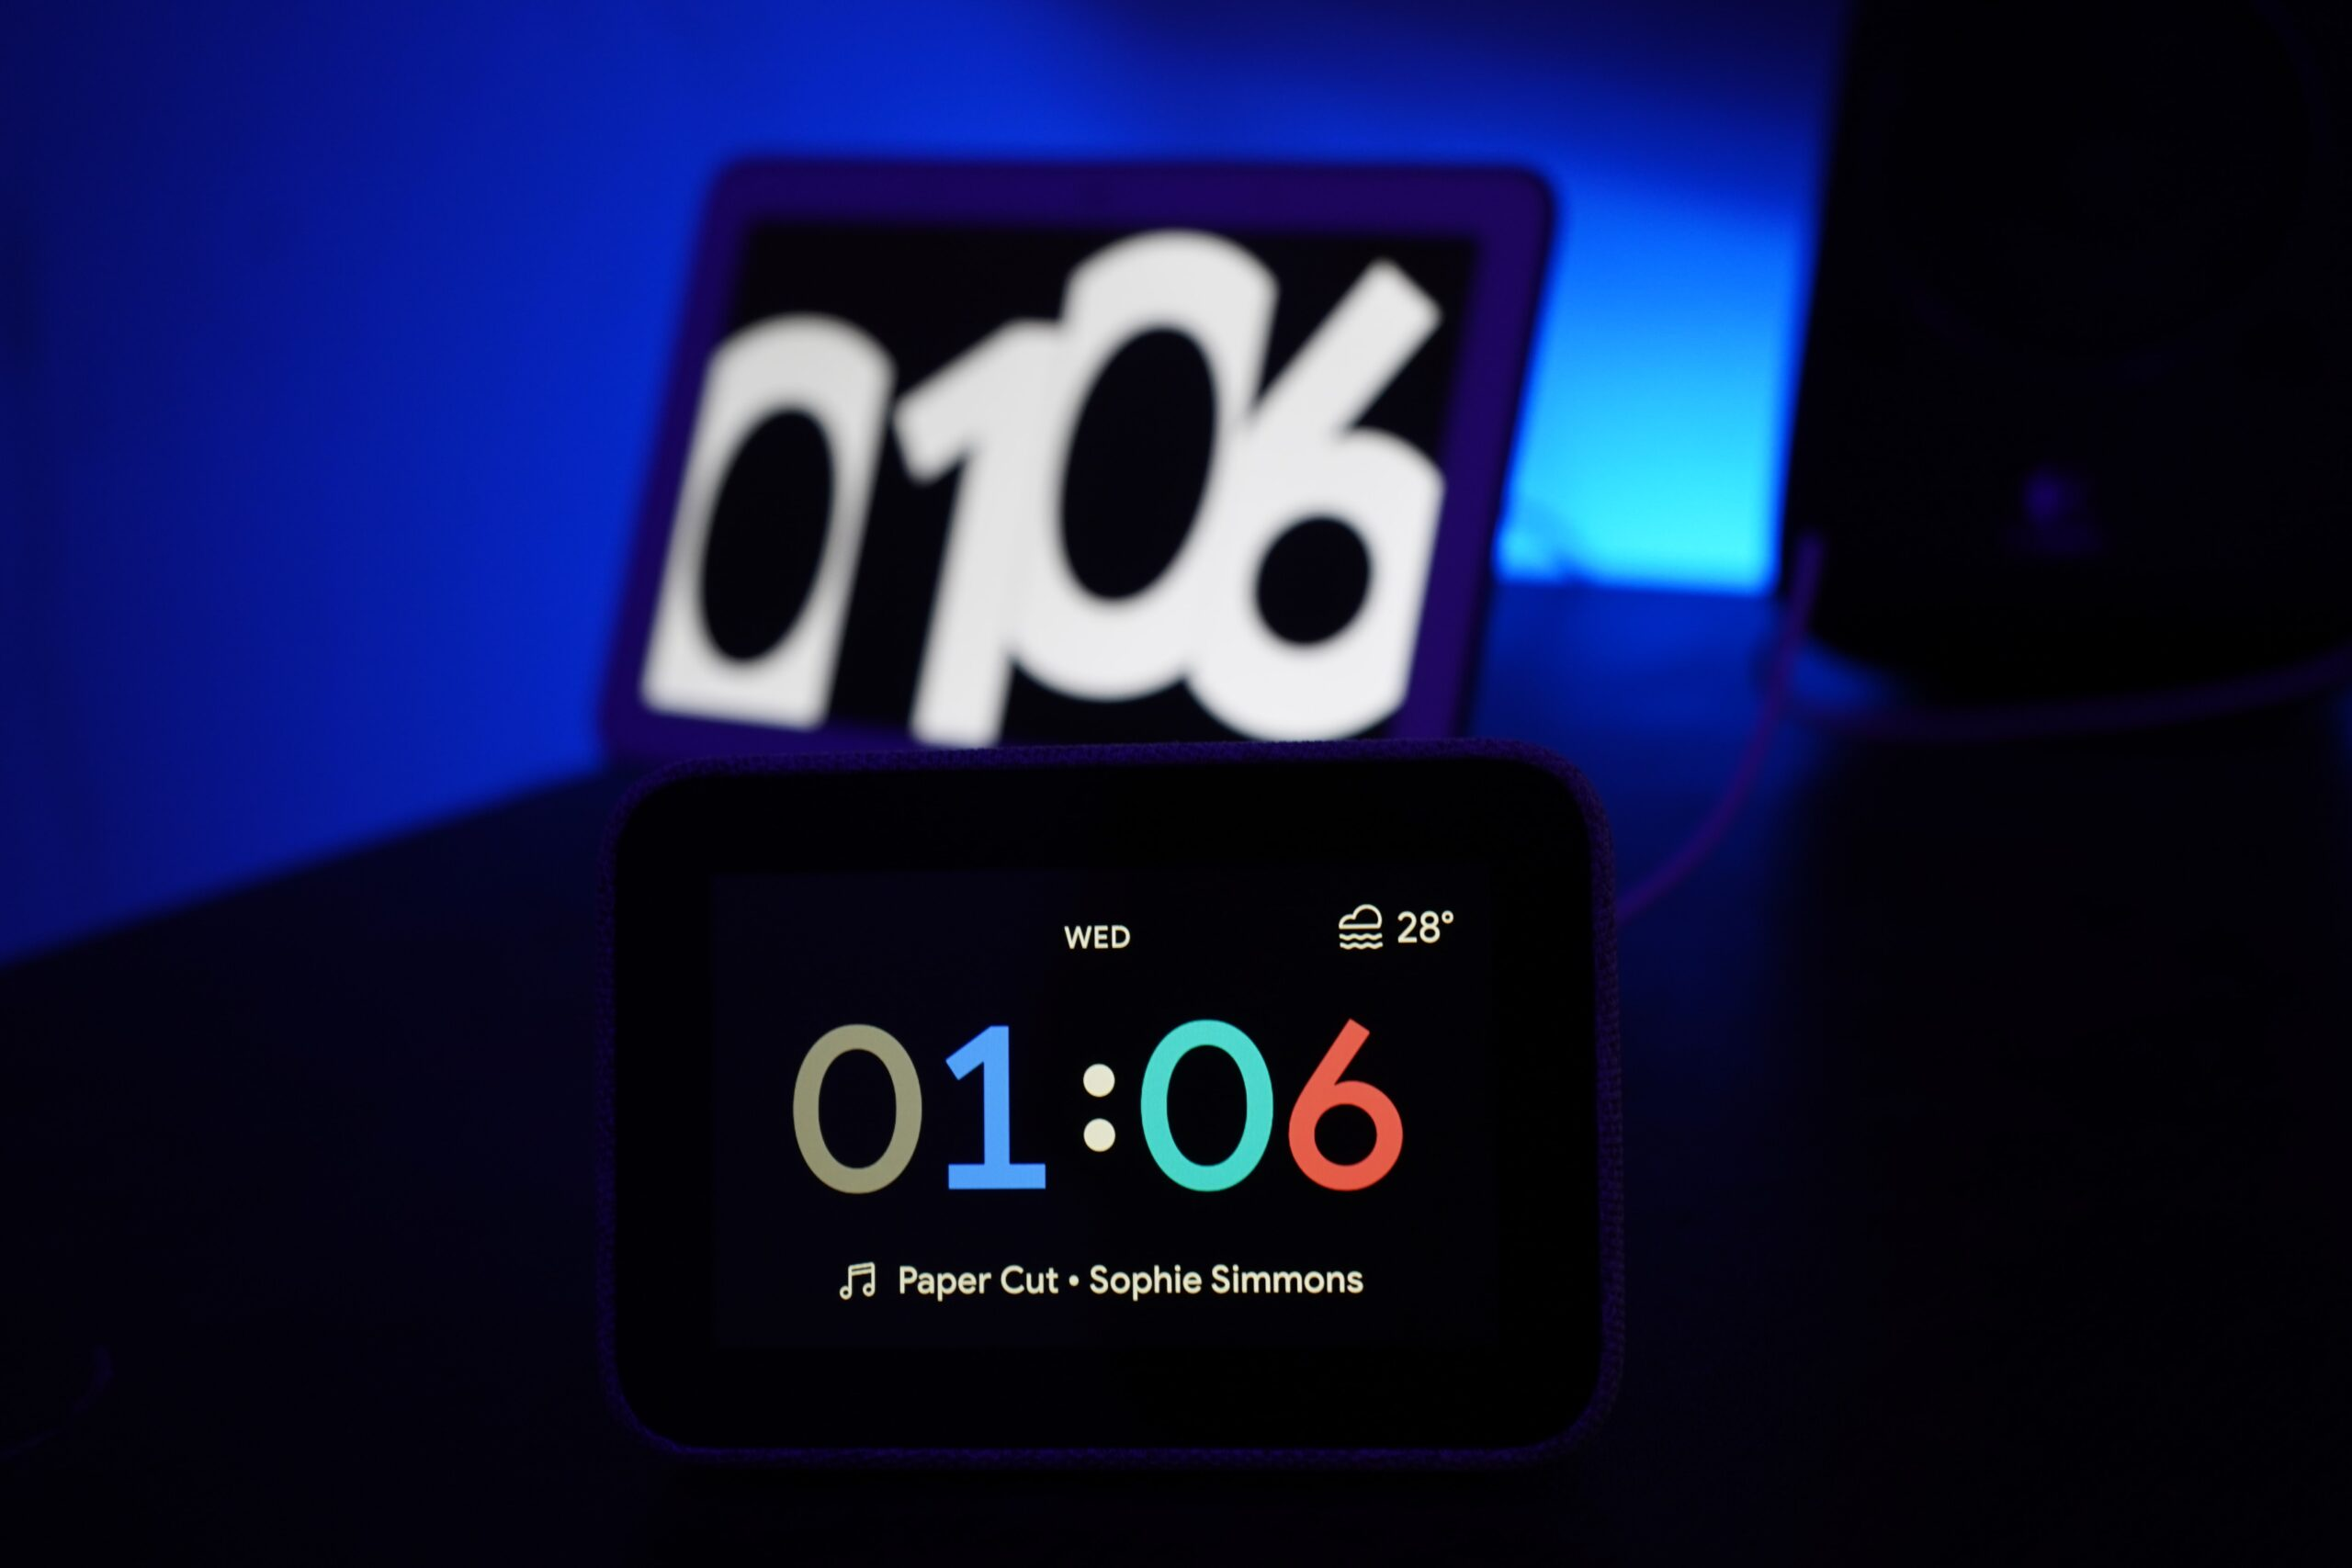 Smart Digital Clock image by Yasin Hasan on Unsplash